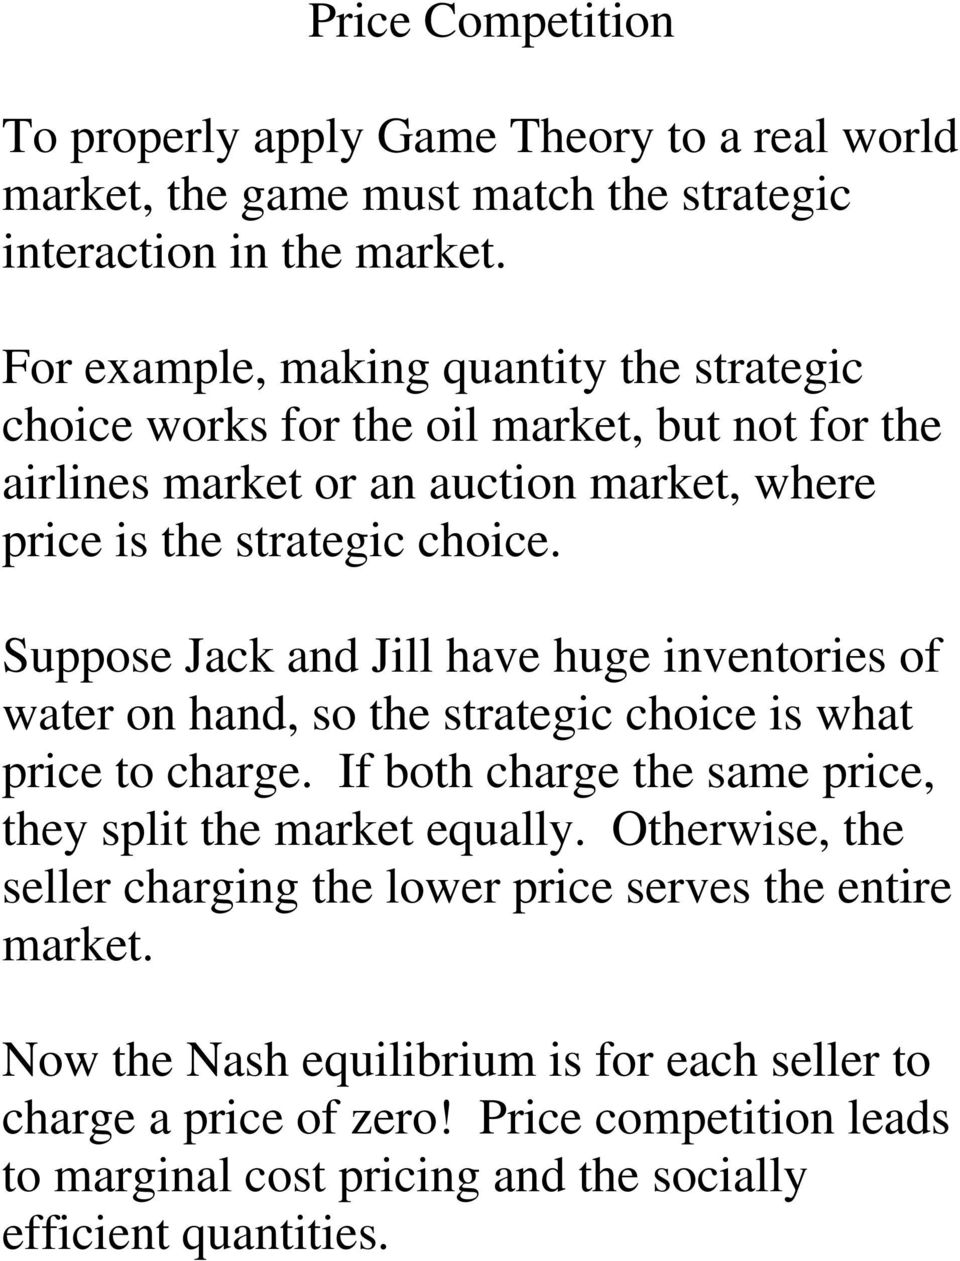 Suppose Jack and Jill have huge inventories of water on hand, so the strategic choice is what price to charge. If both charge the same price, they split the market equally.